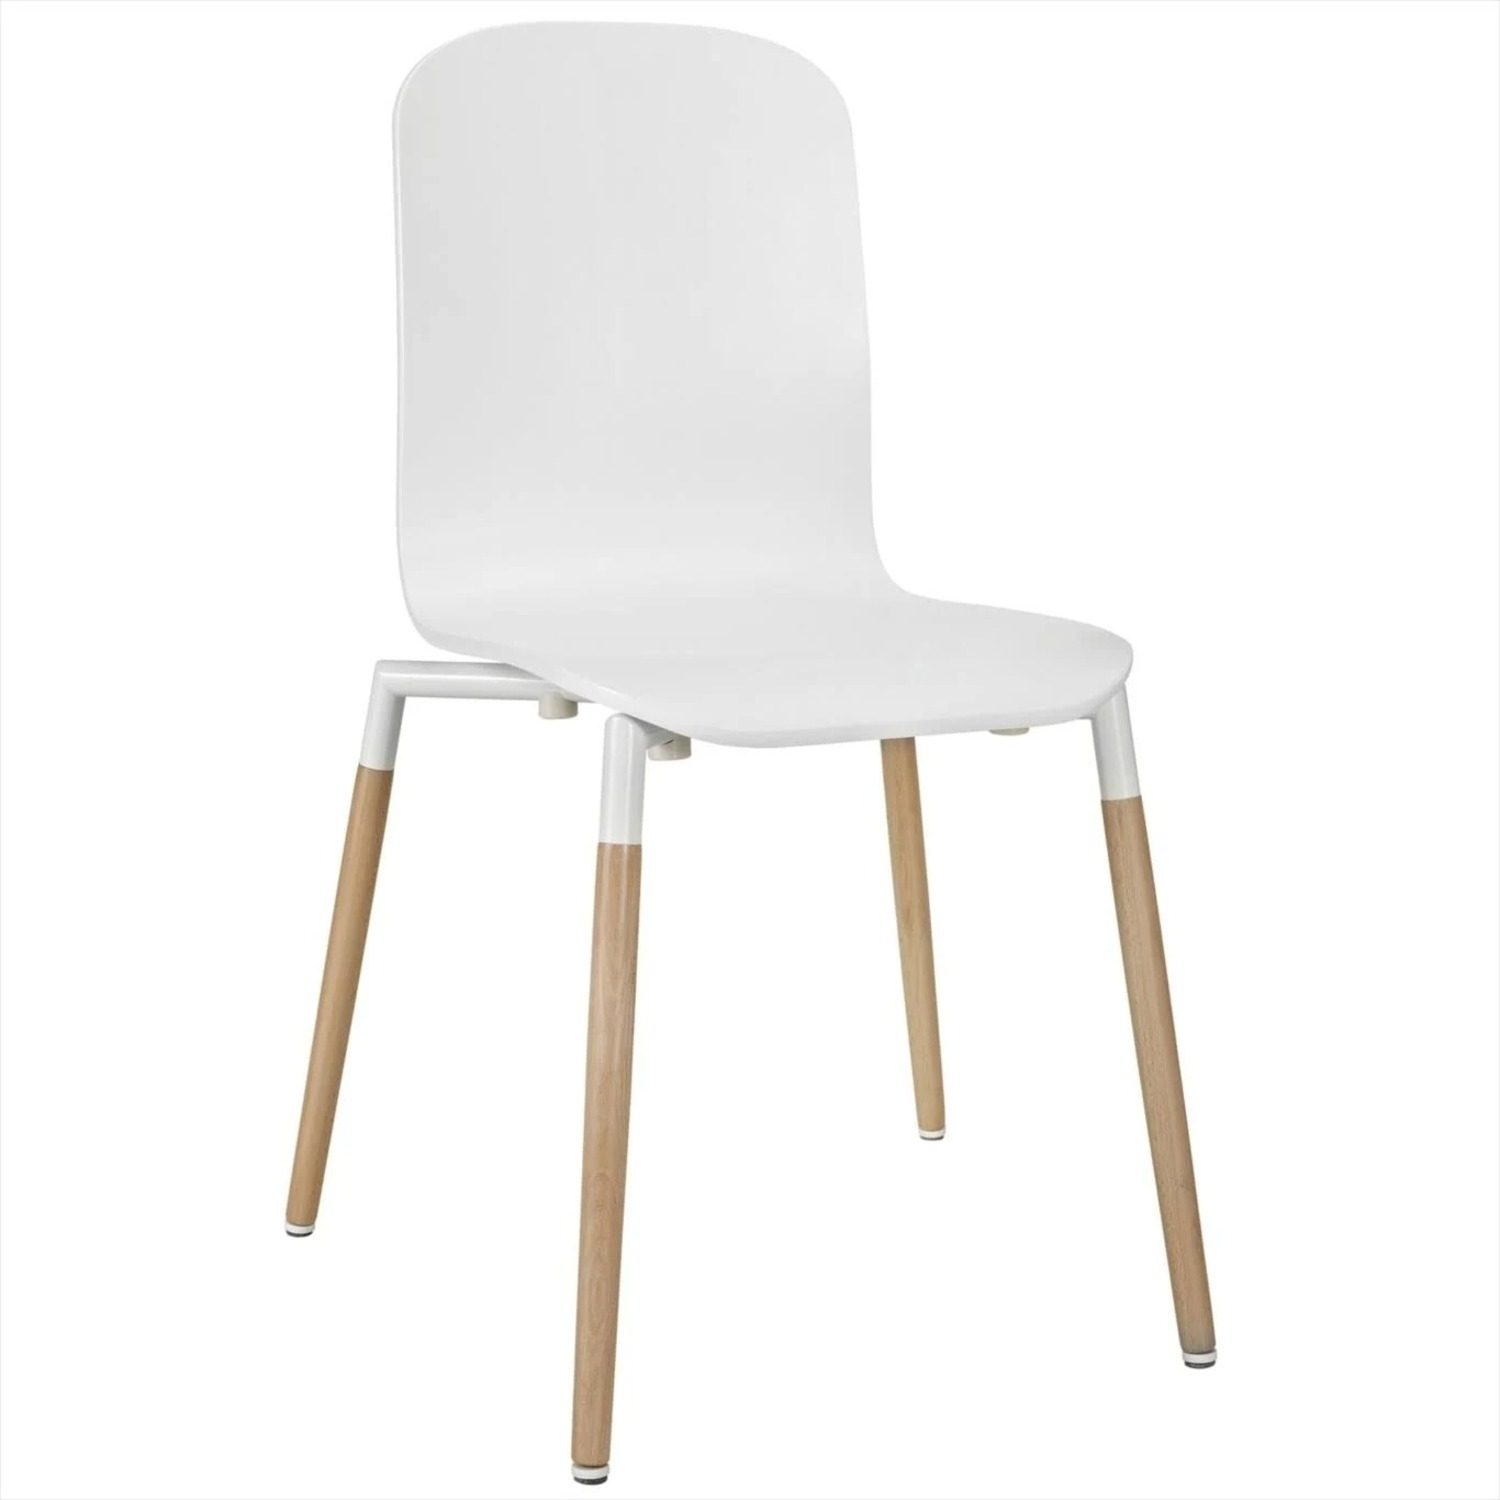 Modway Bentwood Chair set/2 - image-5